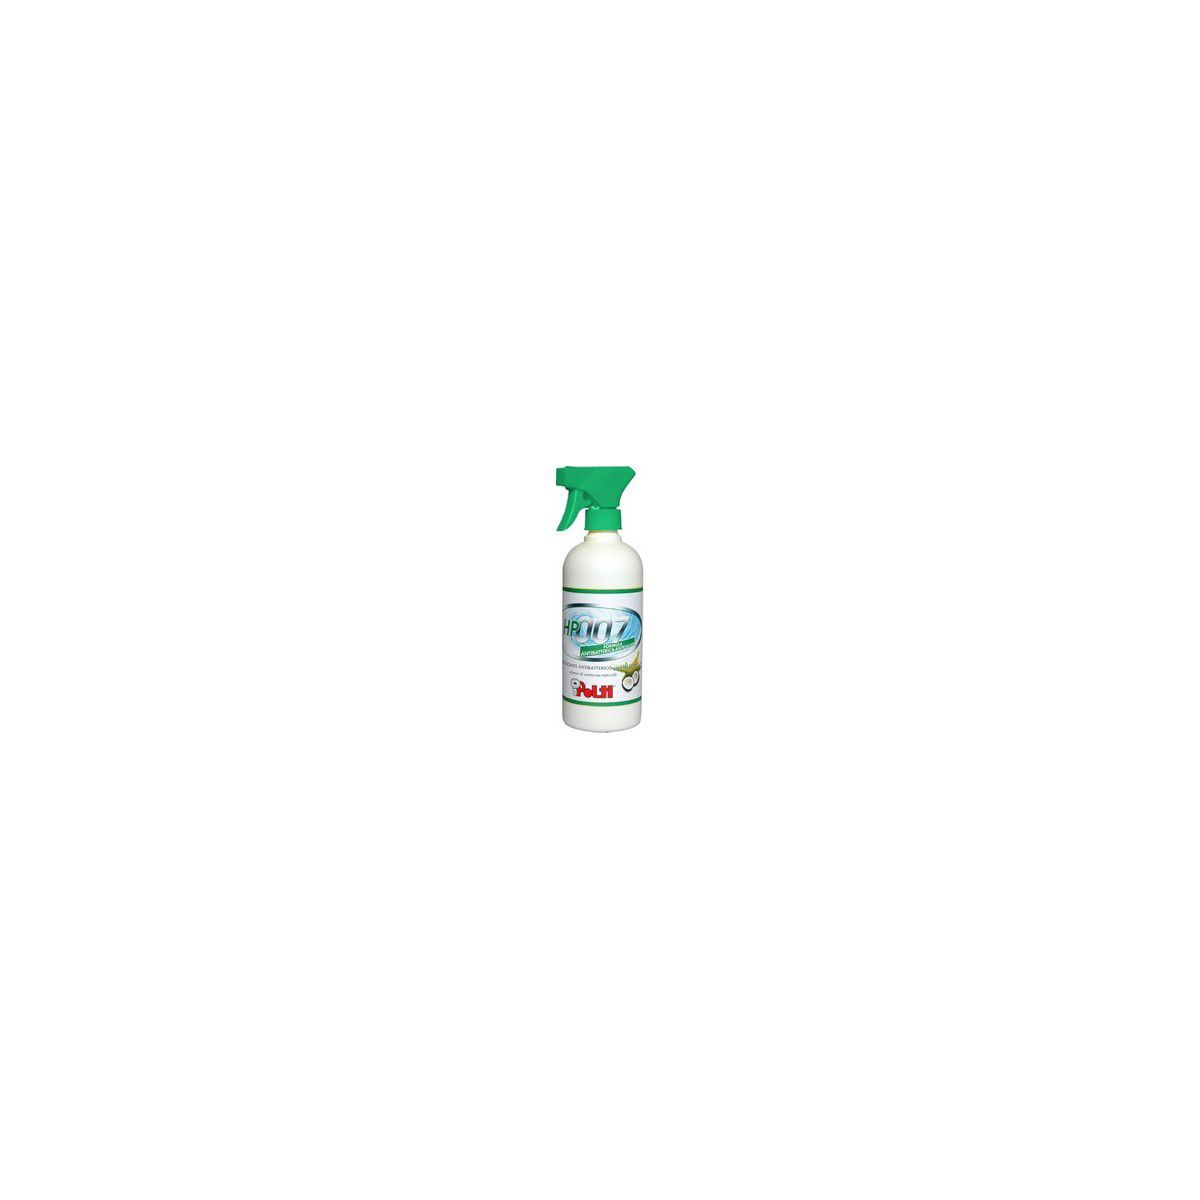 Nettoyant POLTI HP007ANTIBACT SPRAY 500 ml